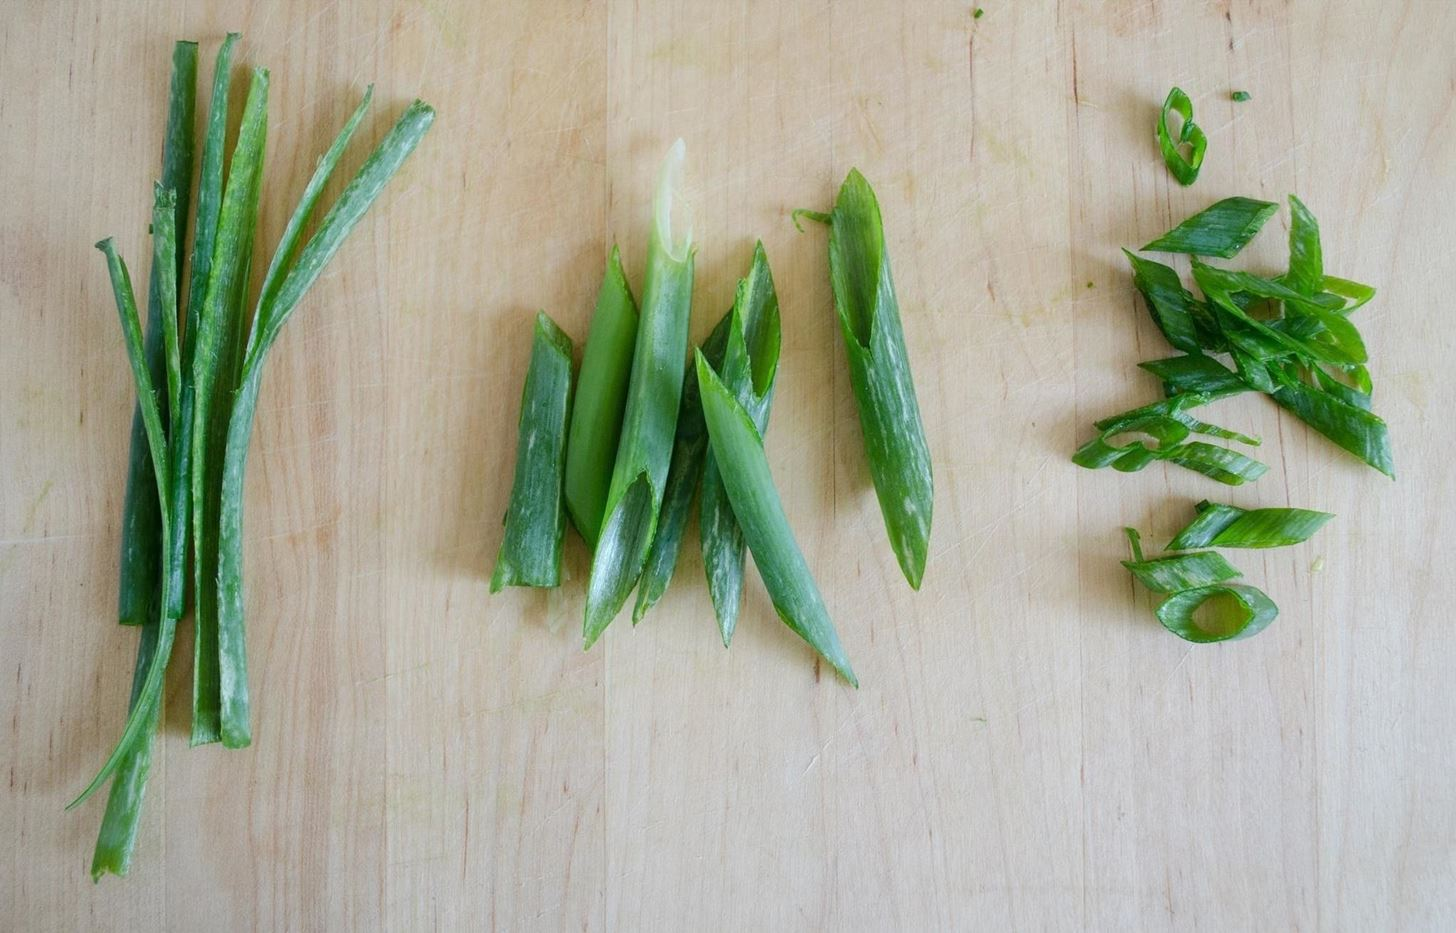 Not All Green Onions Are the Same—Here's How They Differ